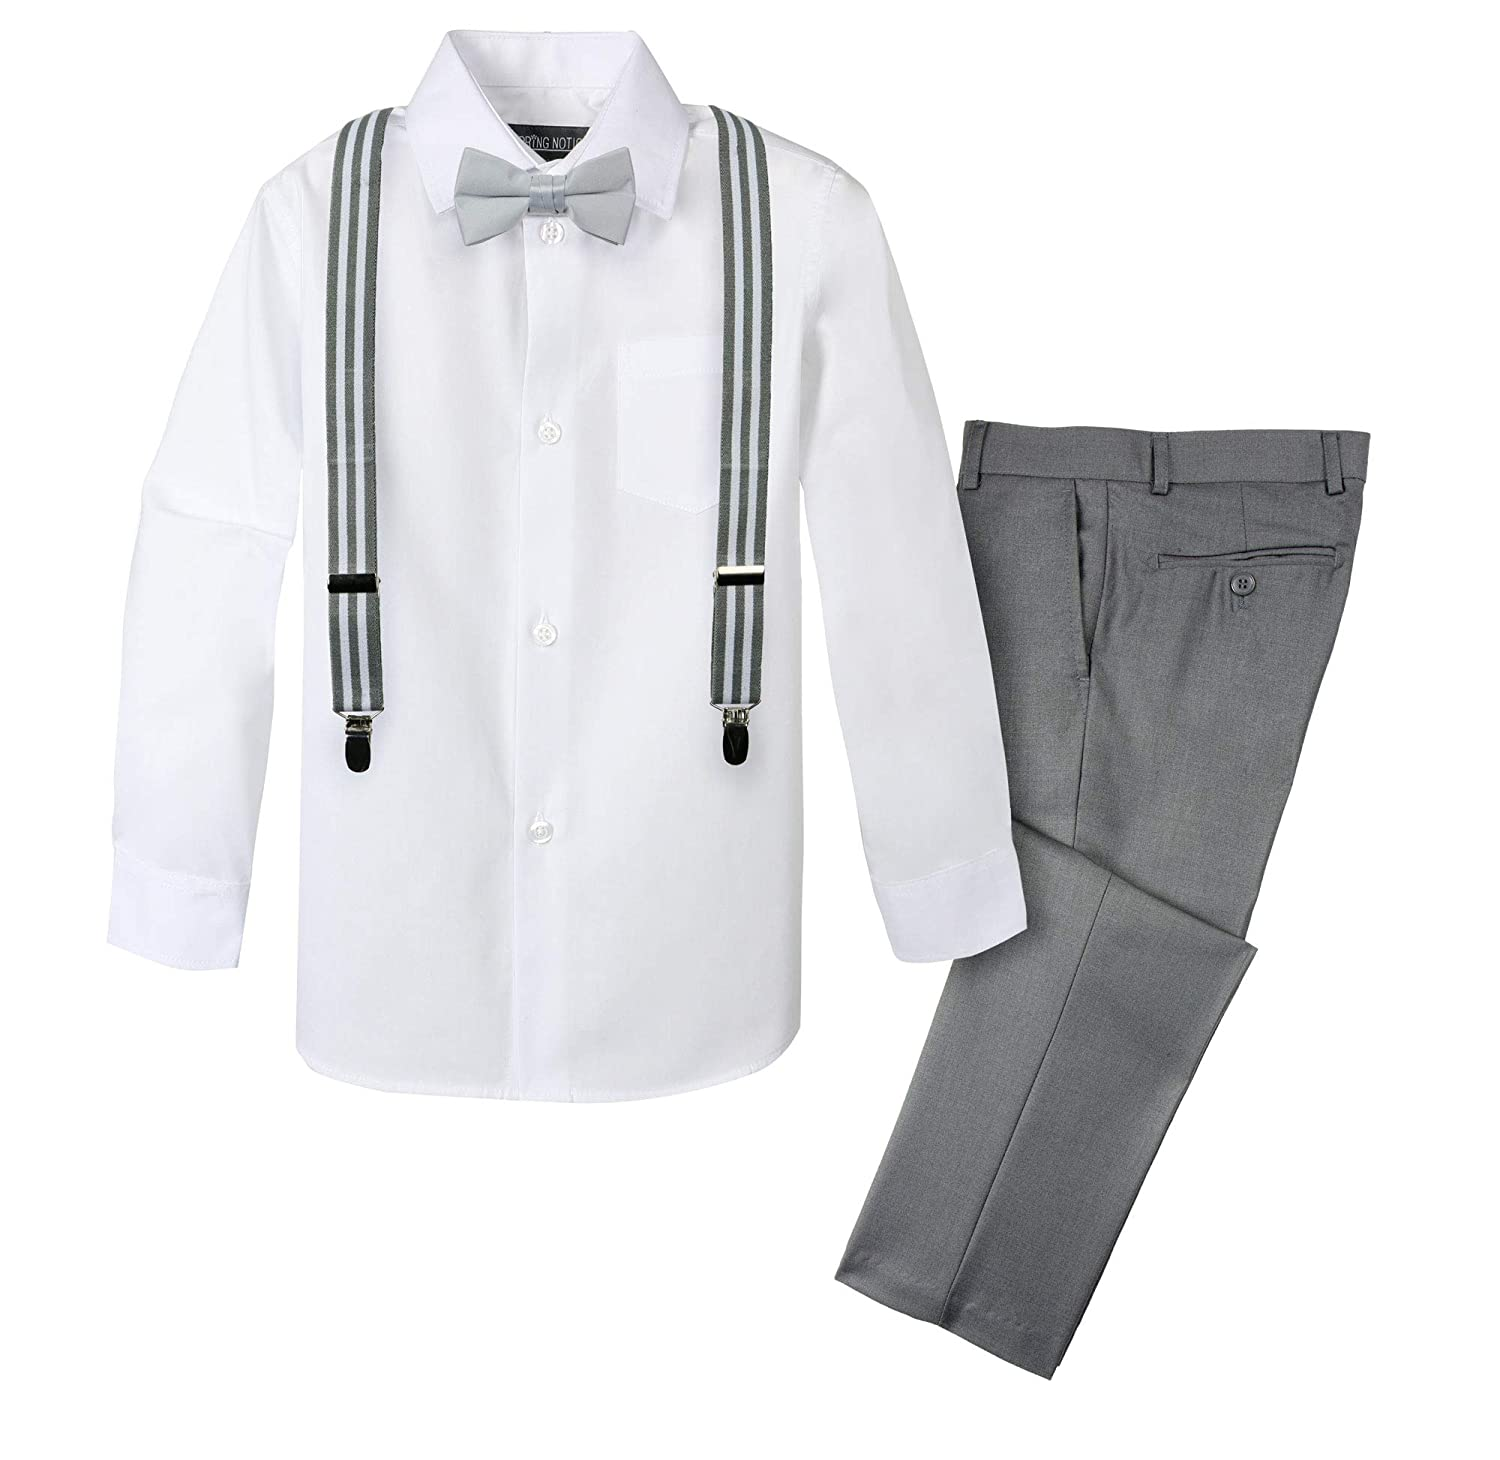 Victorian Kids Costumes & Shoes- Girls, Boys, Baby, Toddler Spring Notion Boys 4-Piece Suspender Outfit $55.95 AT vintagedancer.com